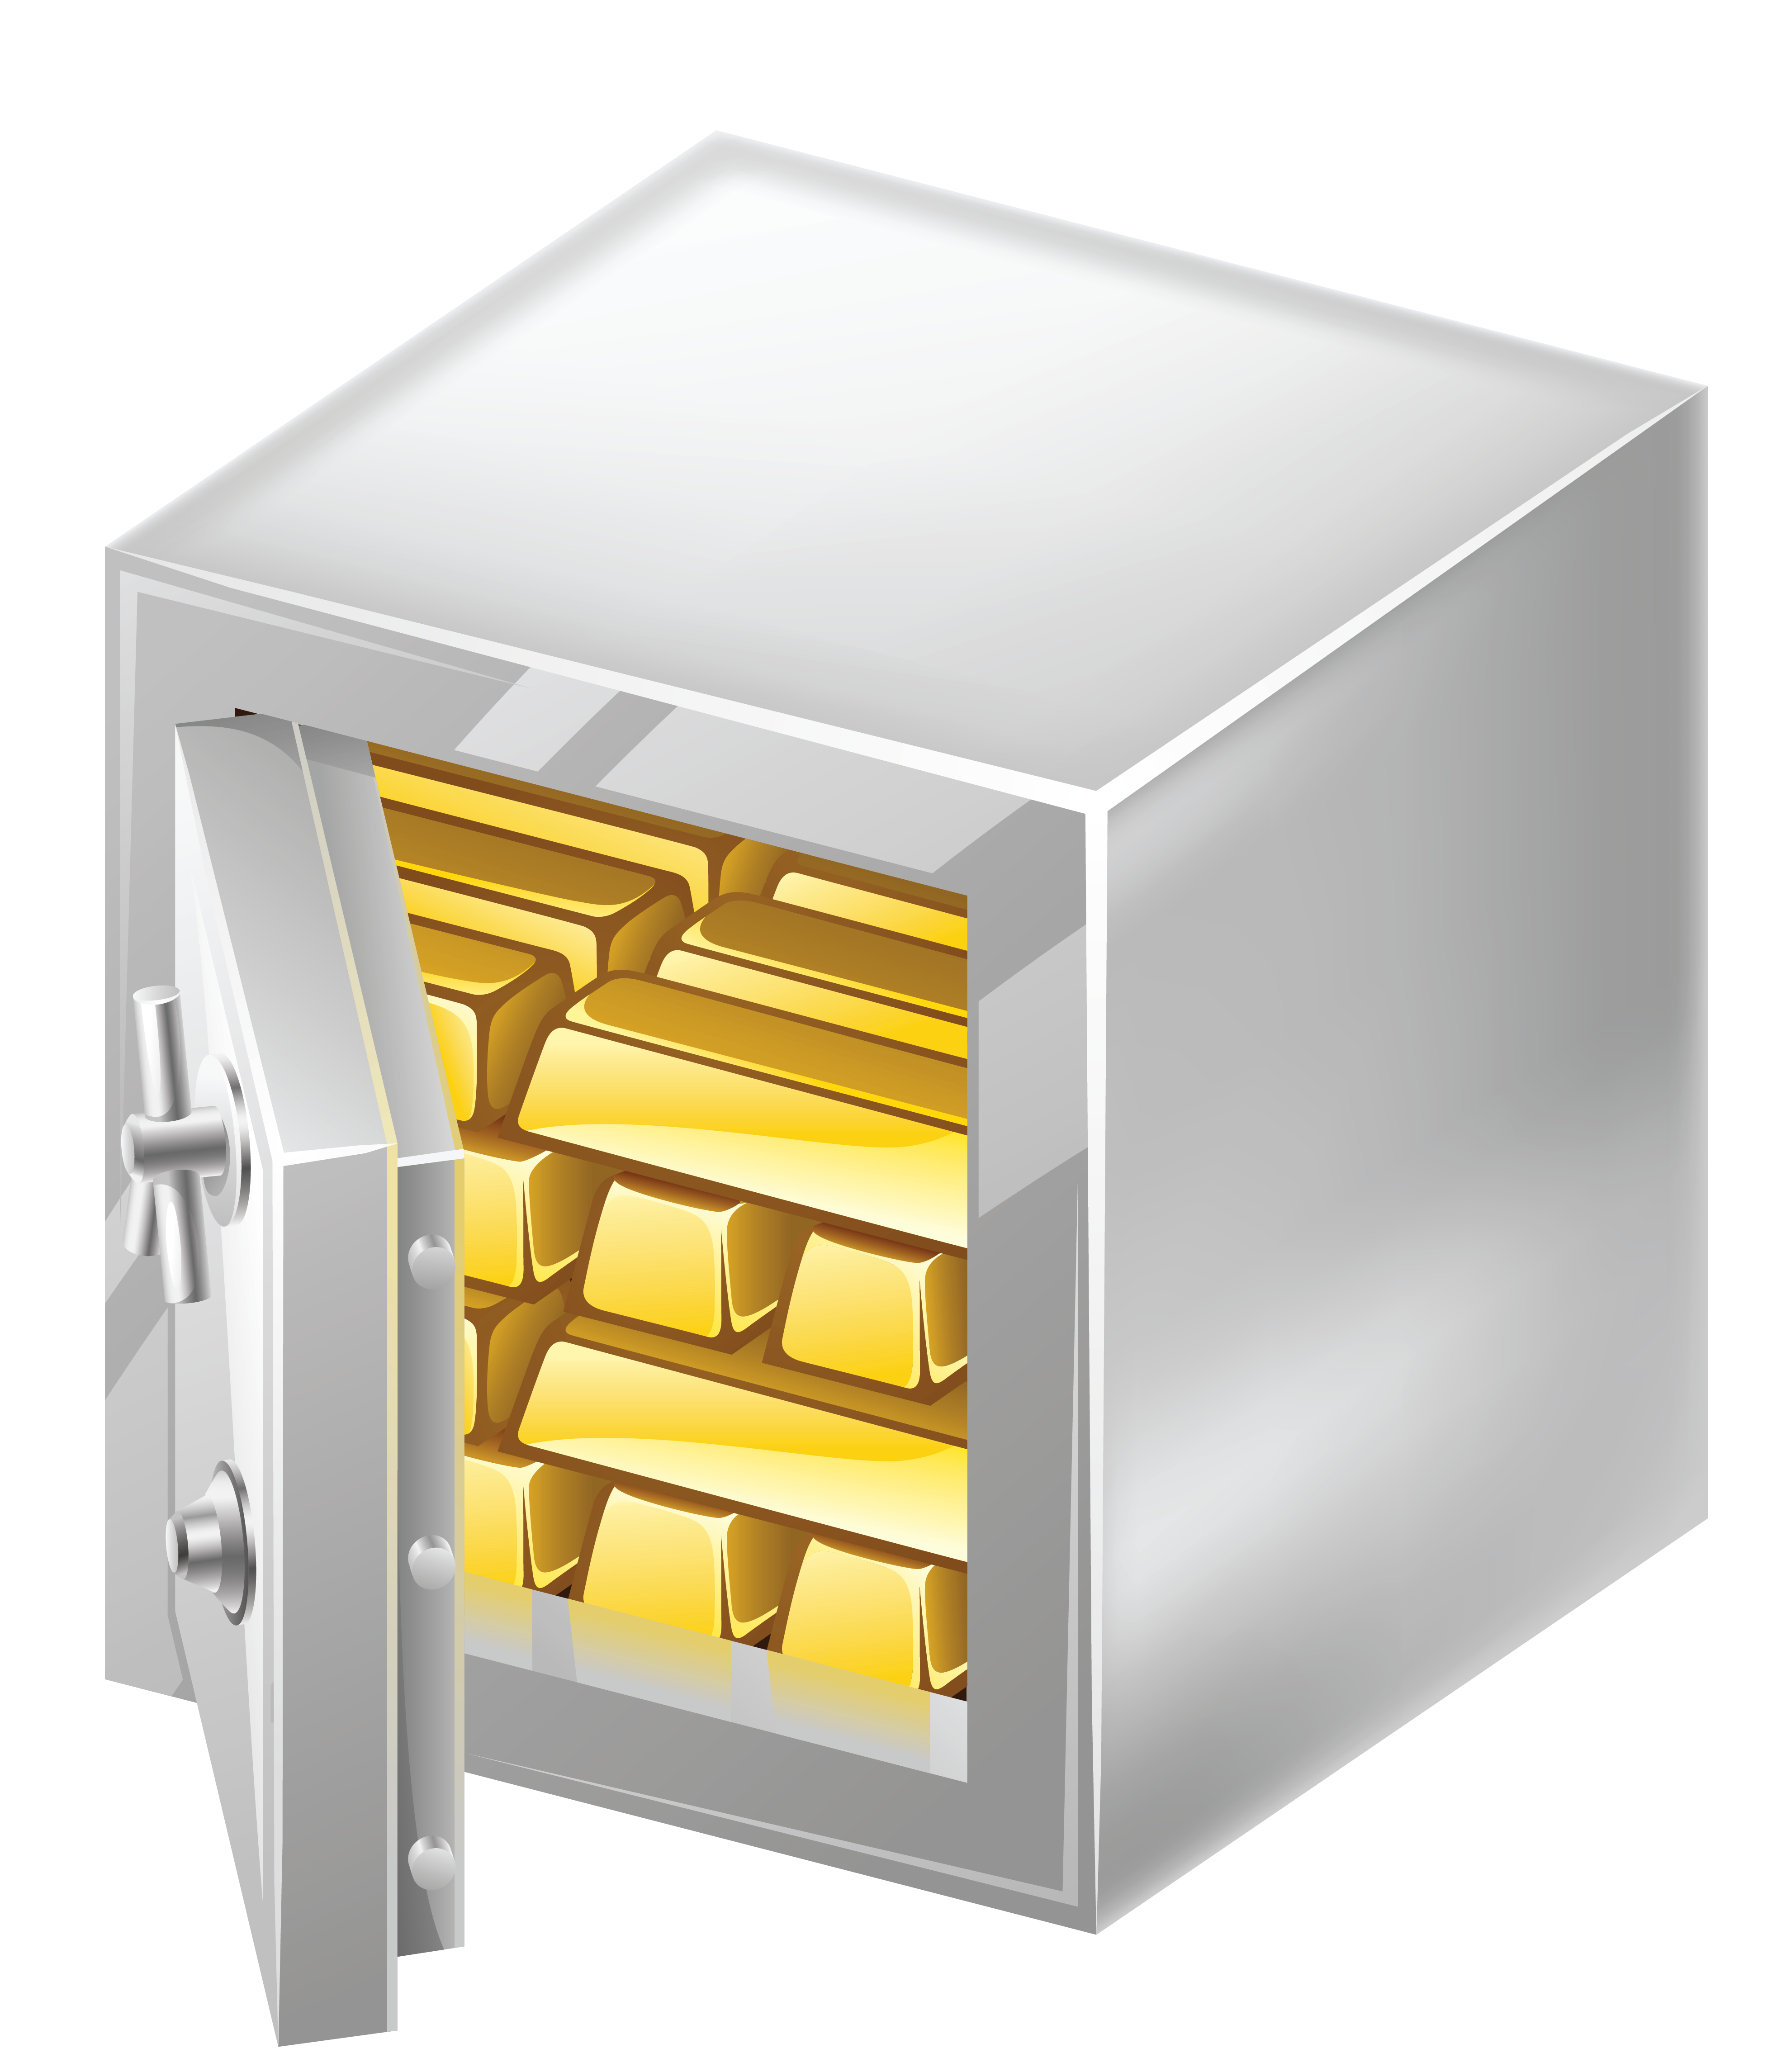 Safe clipart. With gold png picture